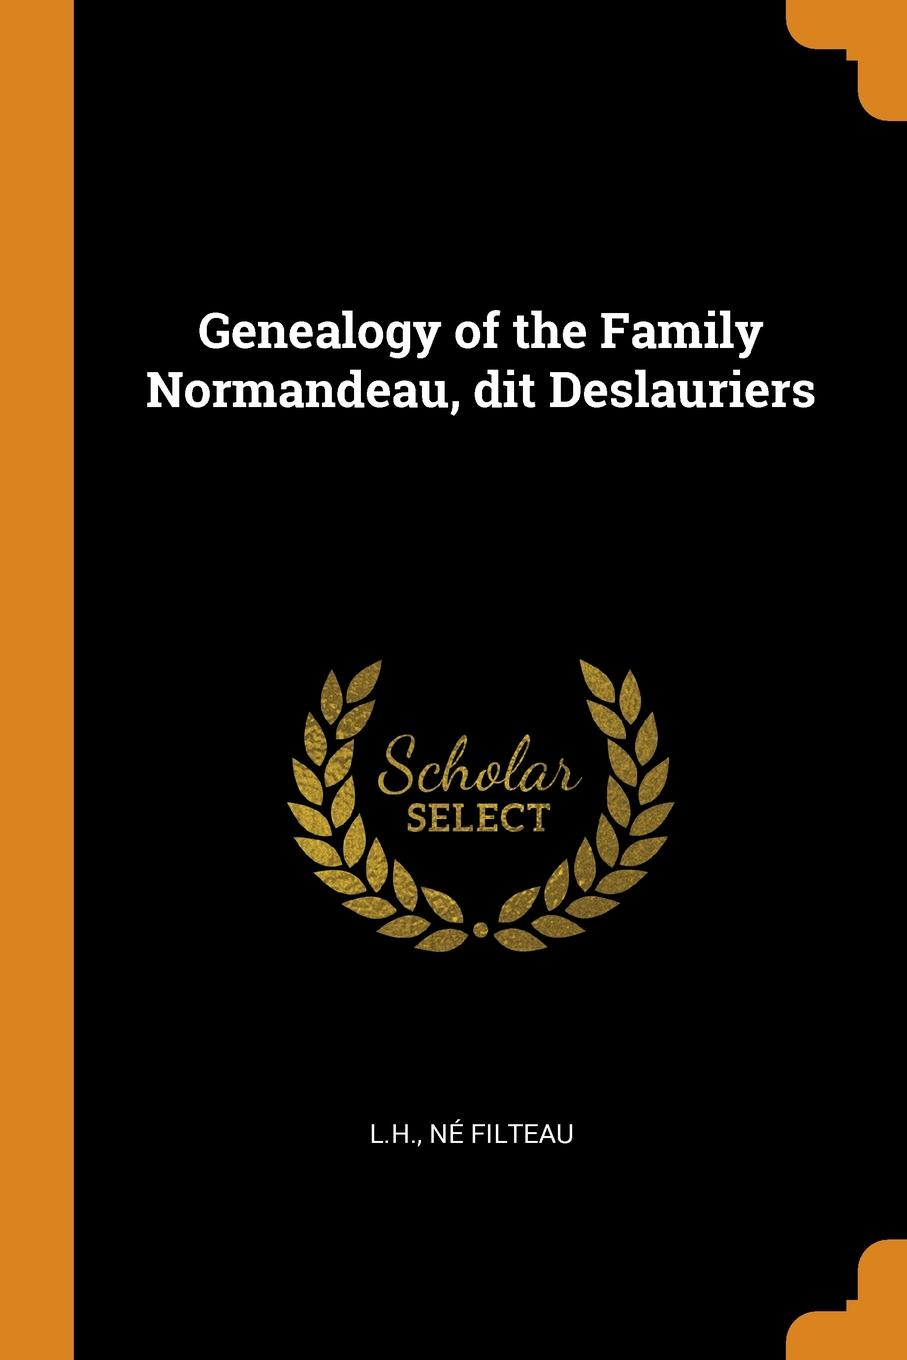 L.H. né Filteau Genealogy of the Family Normandeau, dit Deslauriers